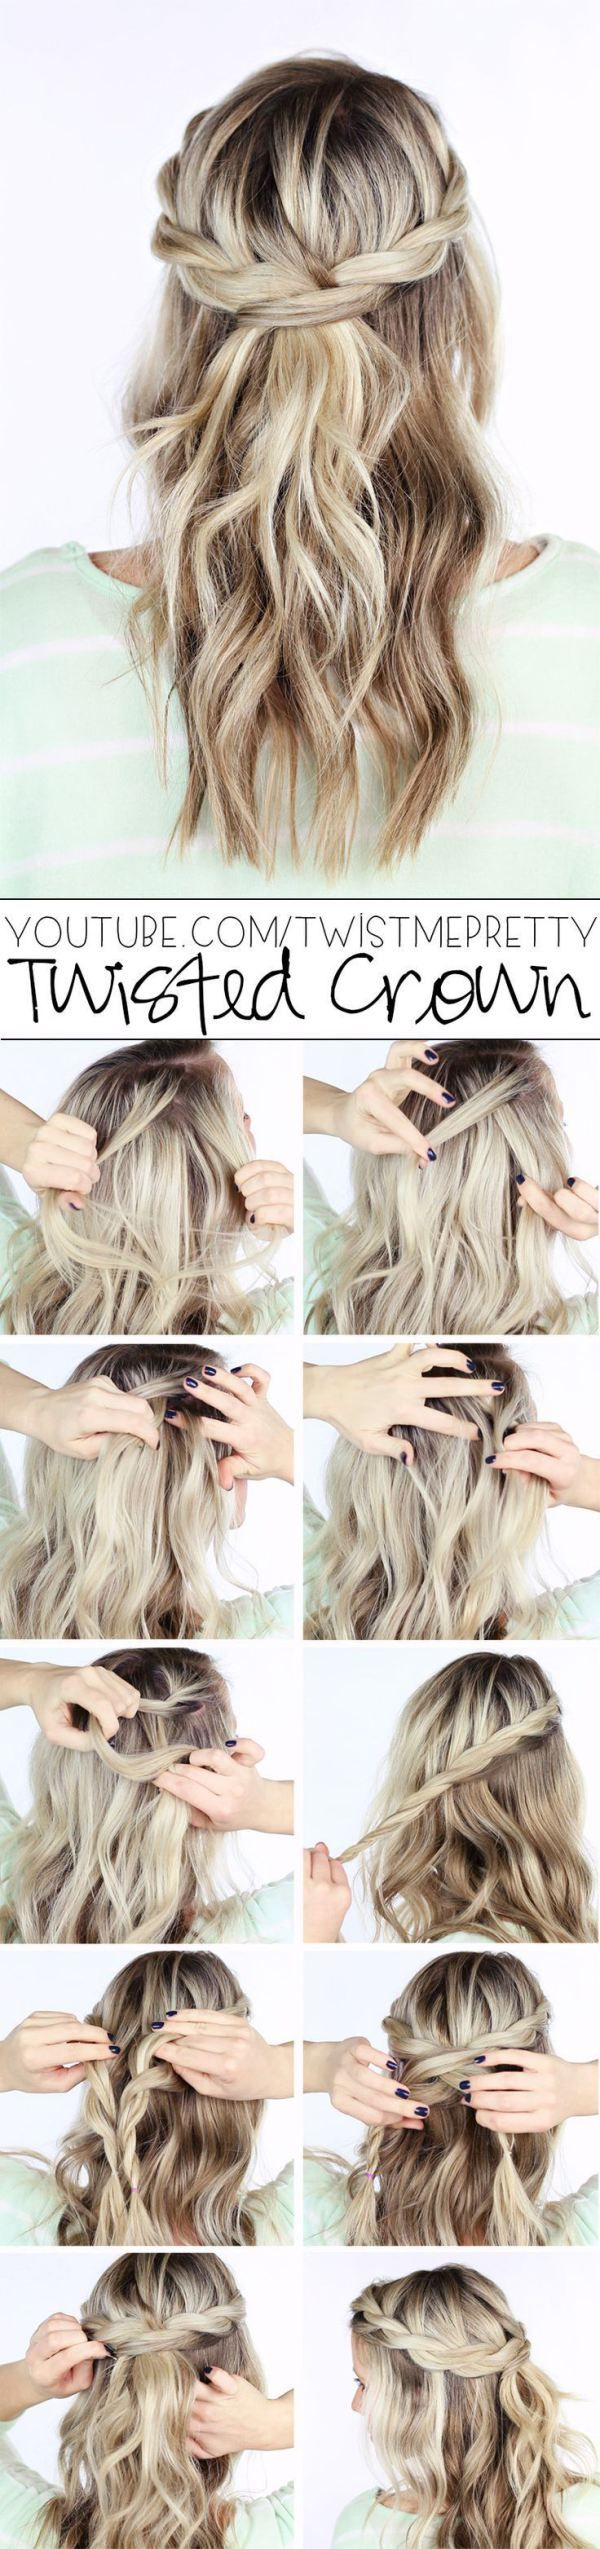 DIY Wedding Hairstyle - Twisted crown braid half up half down hairstyle http://www.jexshop.com/